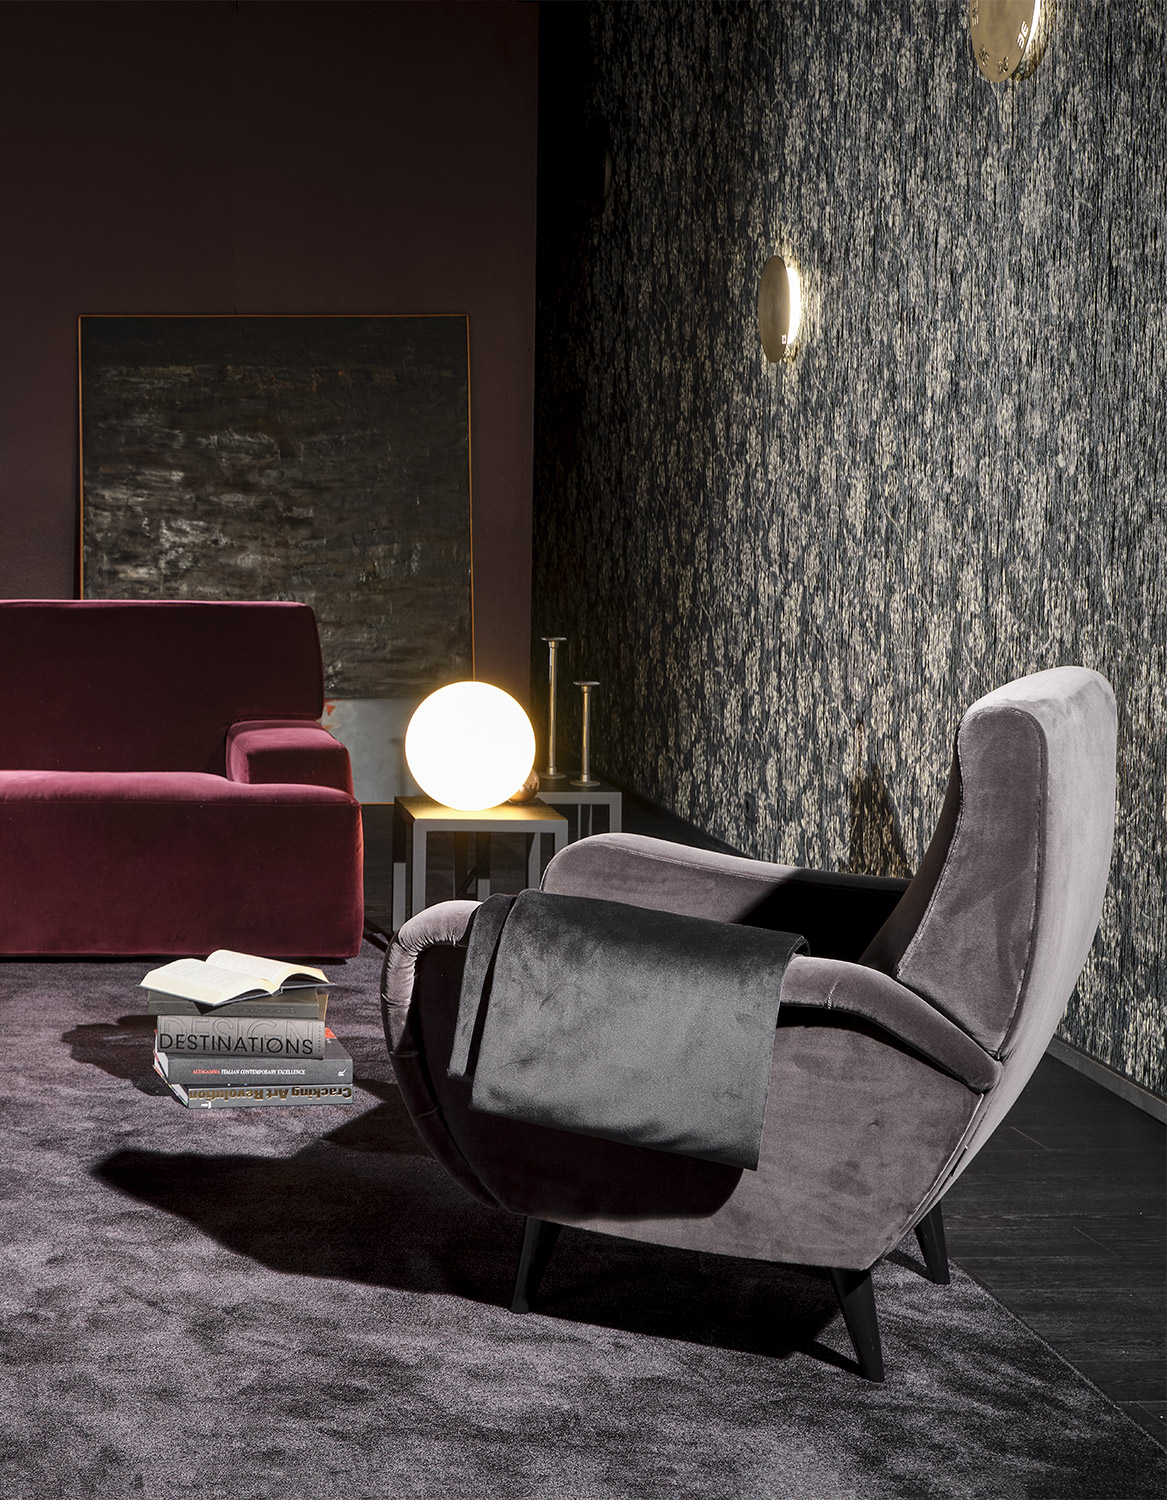 Mussi Eclissi lamp and armchair